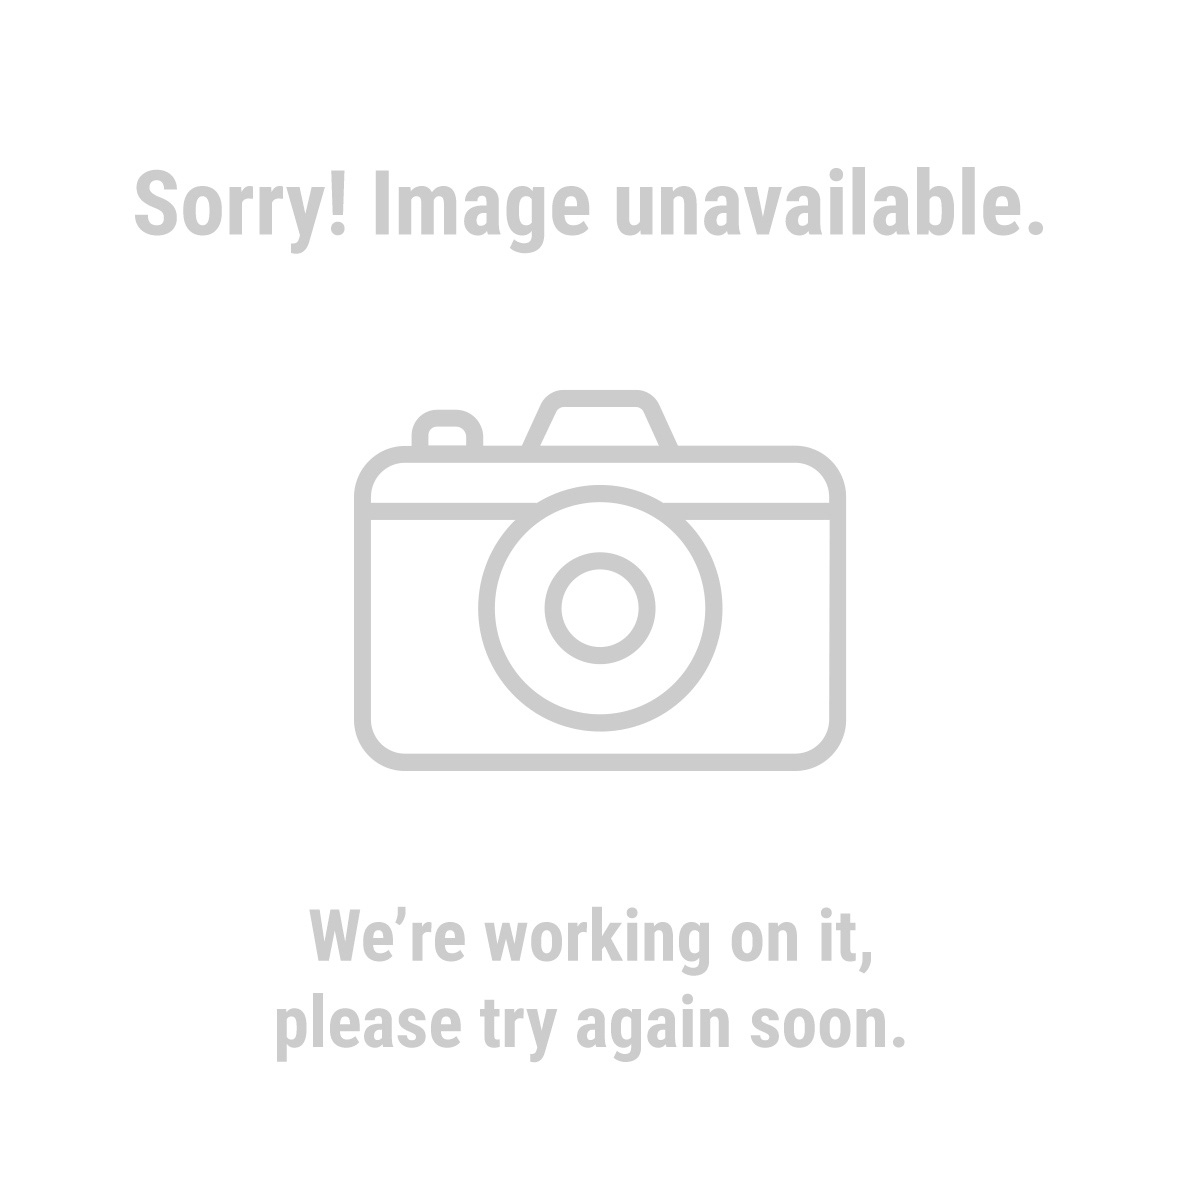 "Harbor Freight Tools 69111 3-1/2"" 9 LED Mini Flashlight"